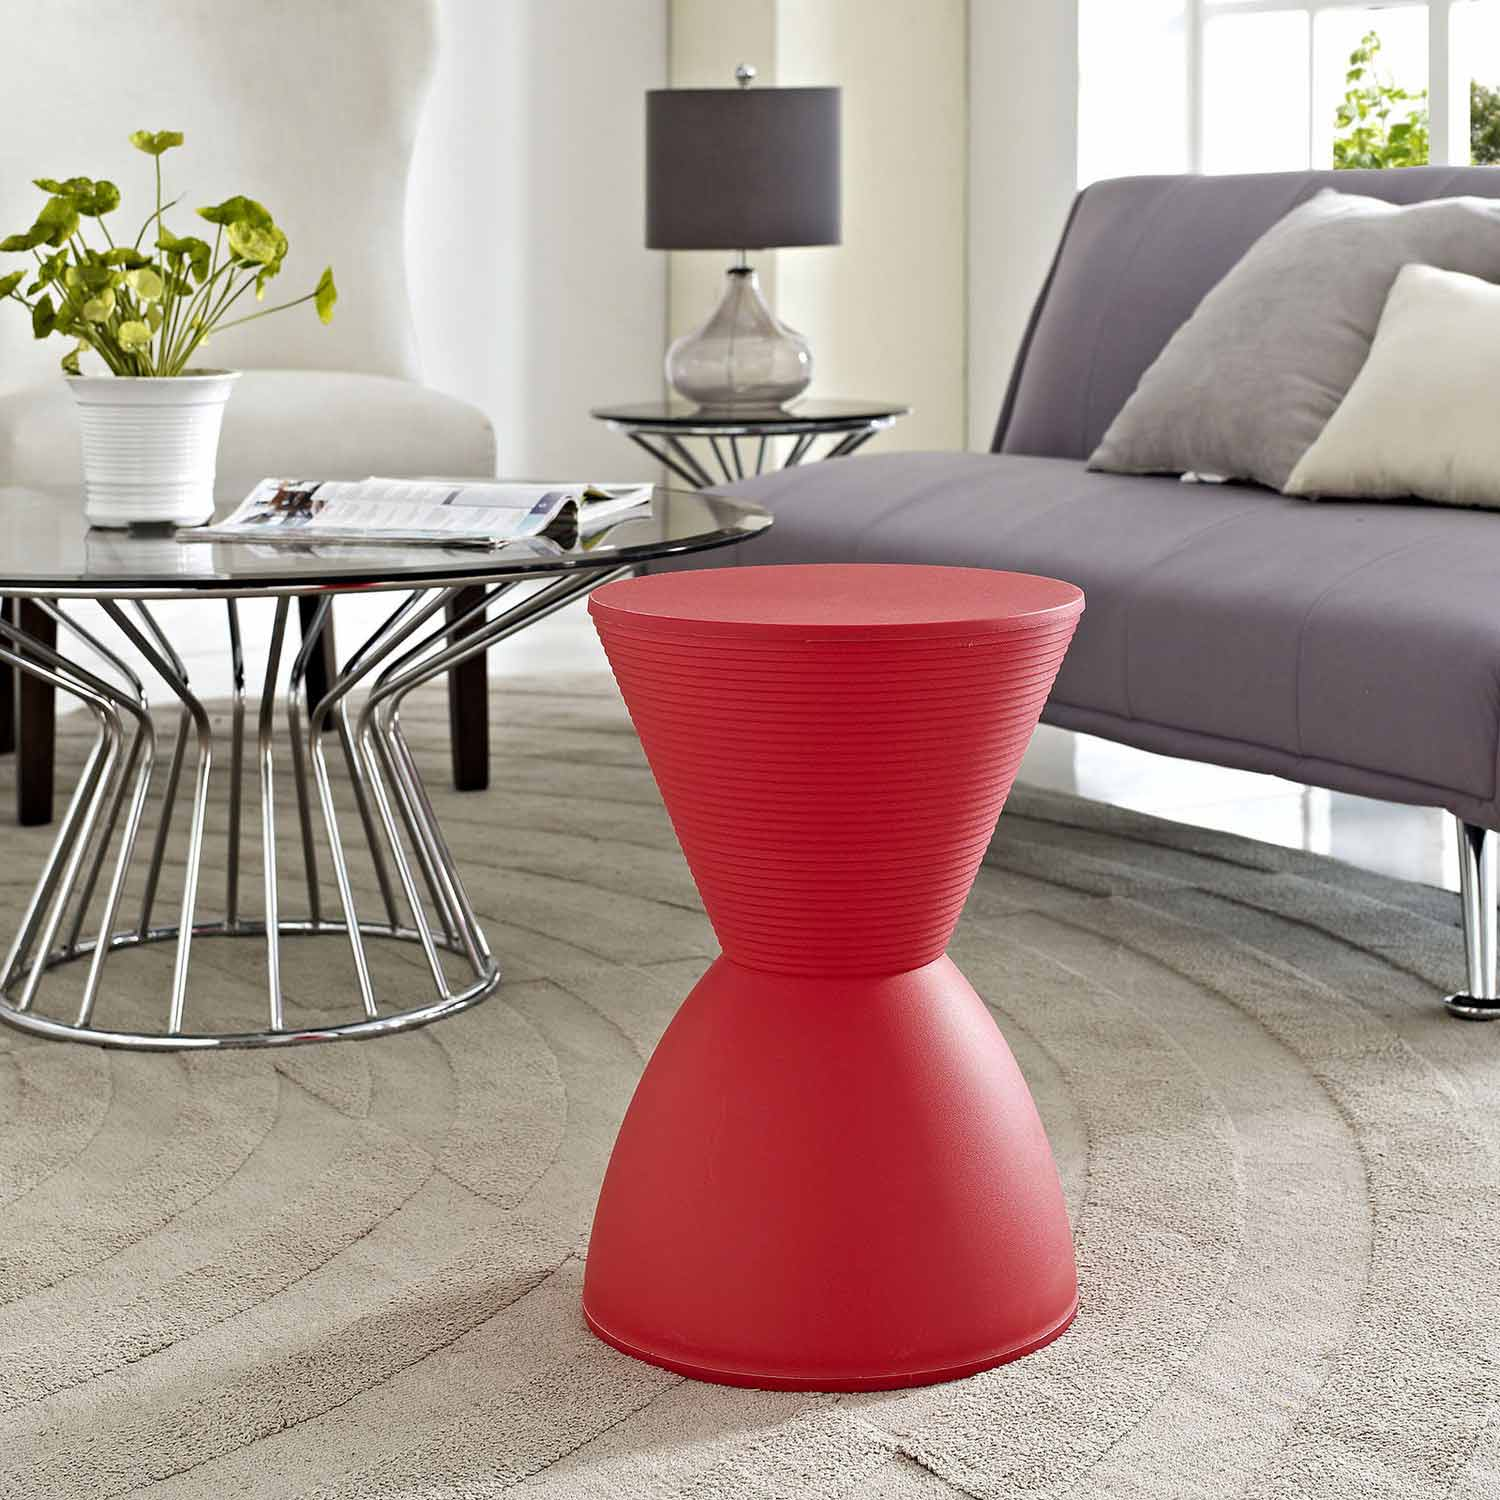 Modway Haste Stool - Red